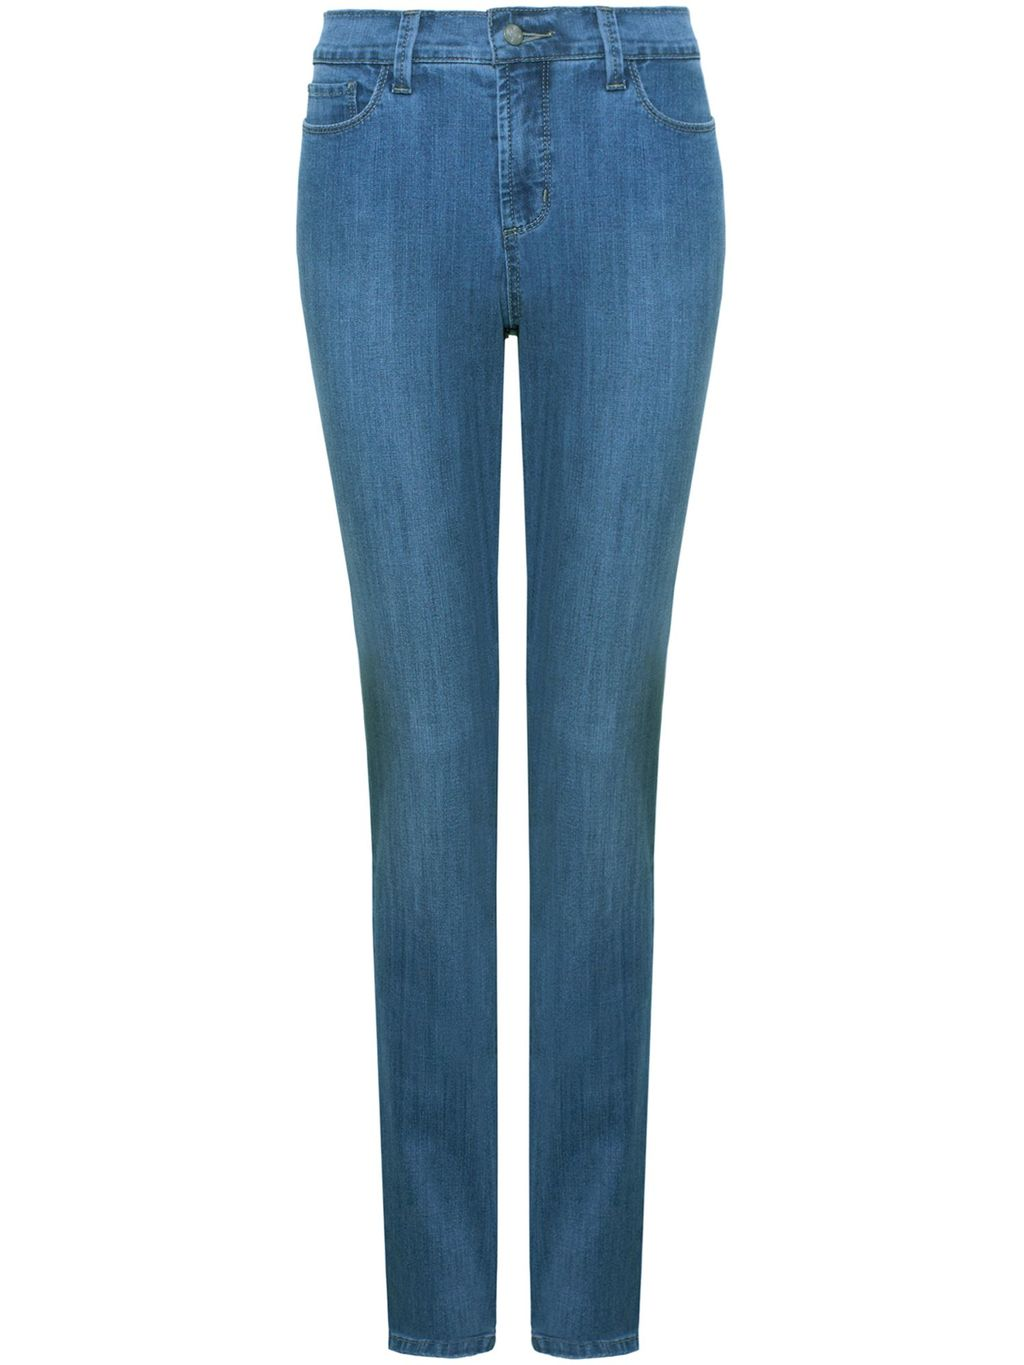 Samantha Slim, Blue - length: standard; pattern: plain; pocket detail: traditional 5 pocket; style: slim leg; waist: mid/regular rise; predominant colour: denim; occasions: casual; fibres: cotton - stretch; texture group: denim; pattern type: fabric; season: s/s 2016; wardrobe: basic